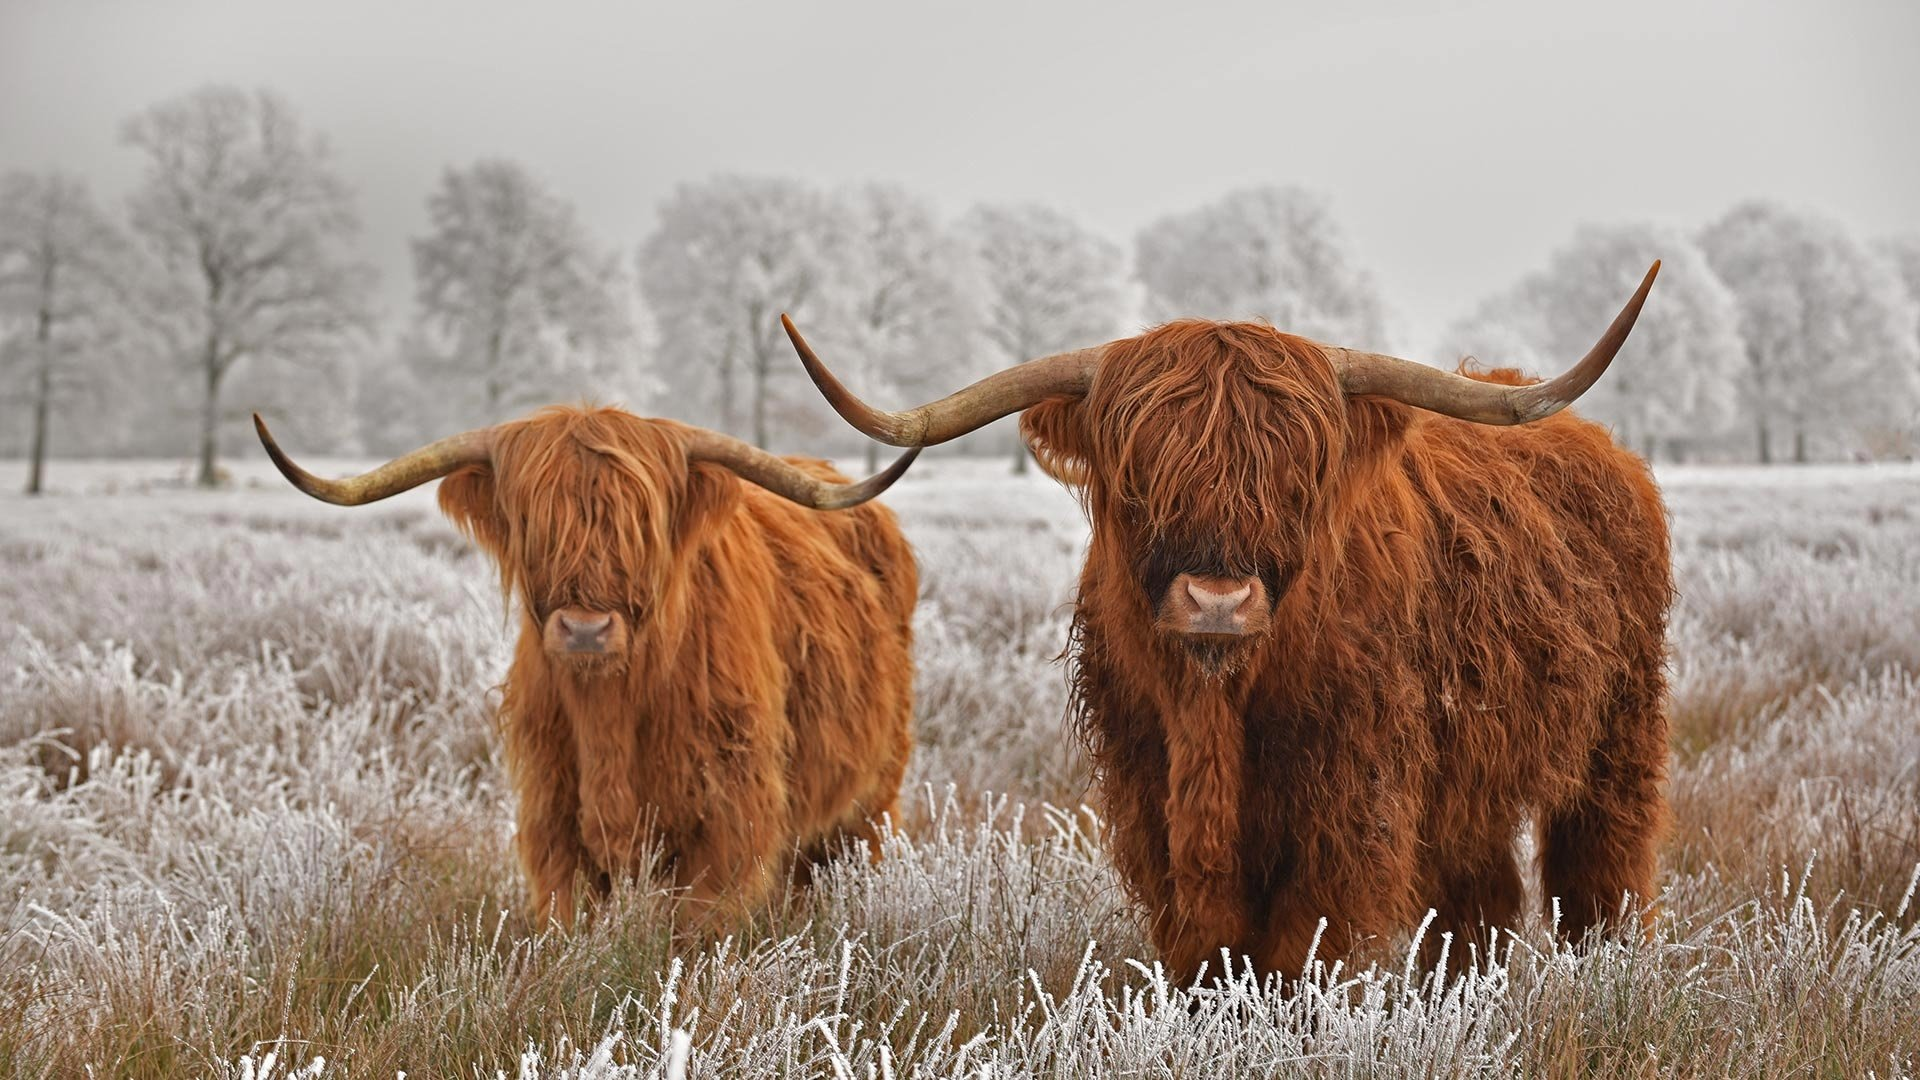 Highland Cattle Hd Wallpaper Background Image 1920x1080 Id 1053738 Wallpaper Abyss